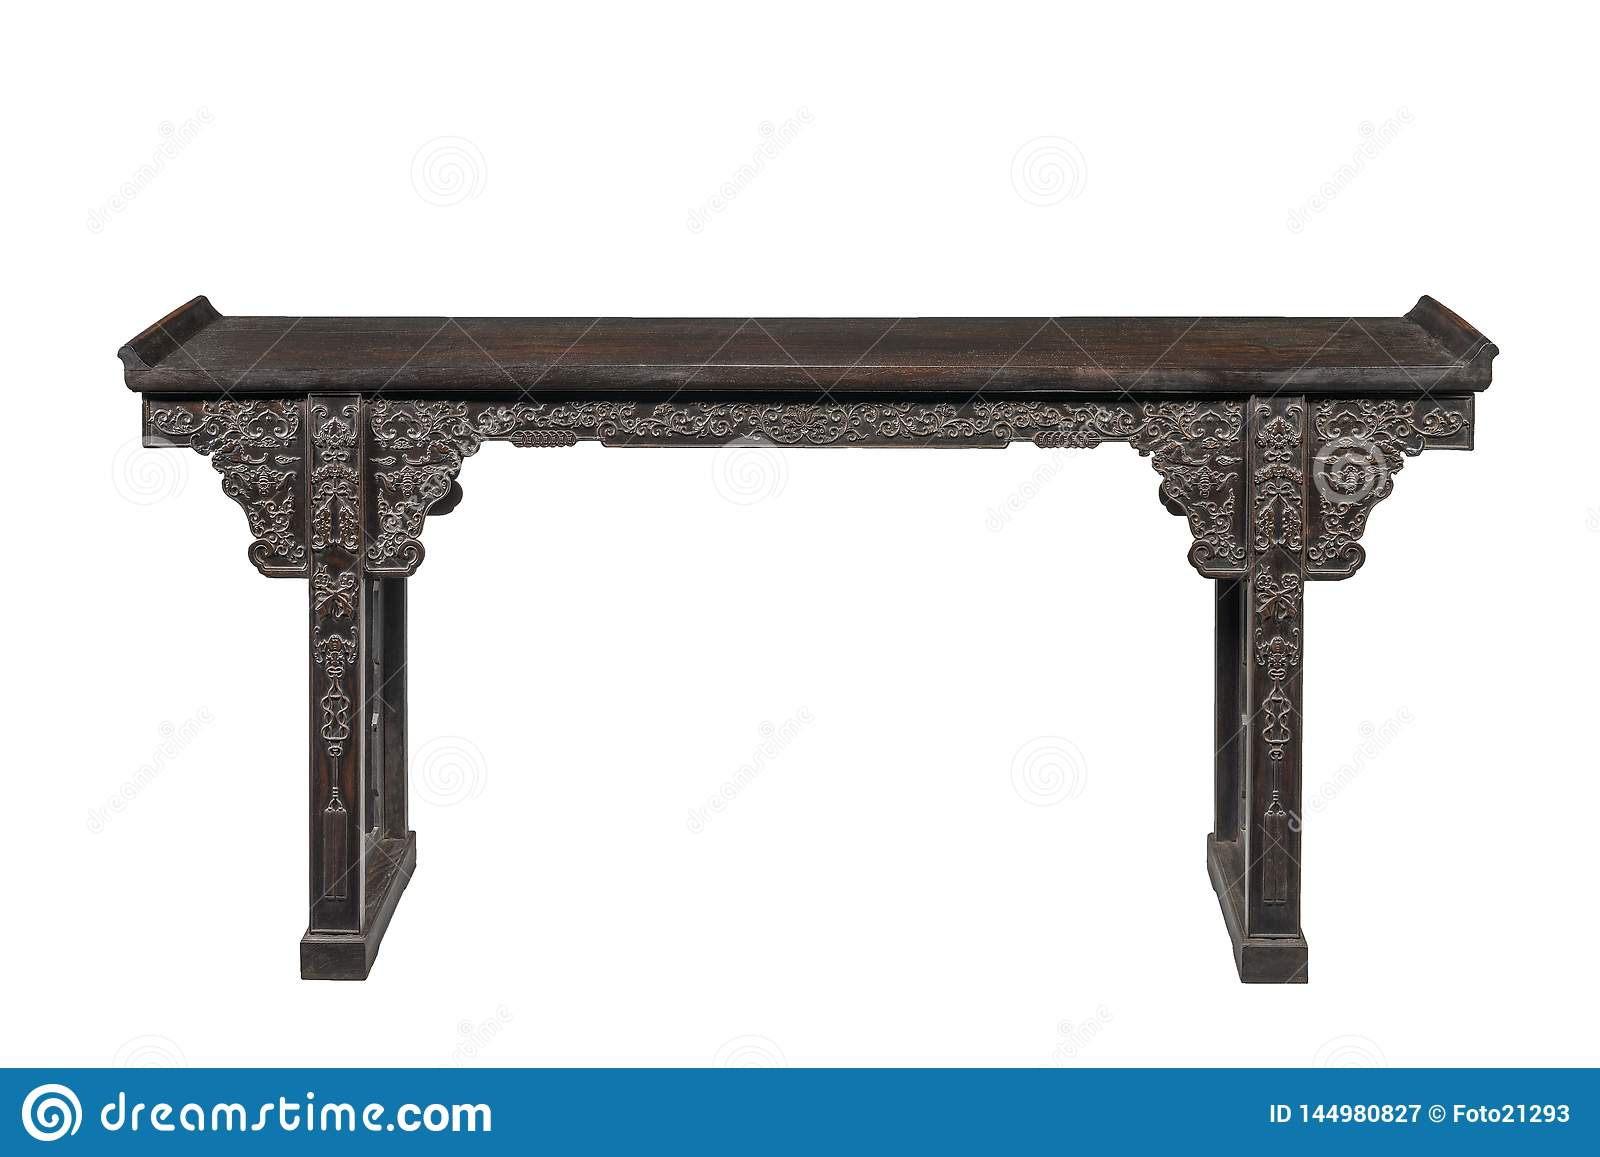 Chinese Hardwood Alter Table Stock Image - Image of asian, asia